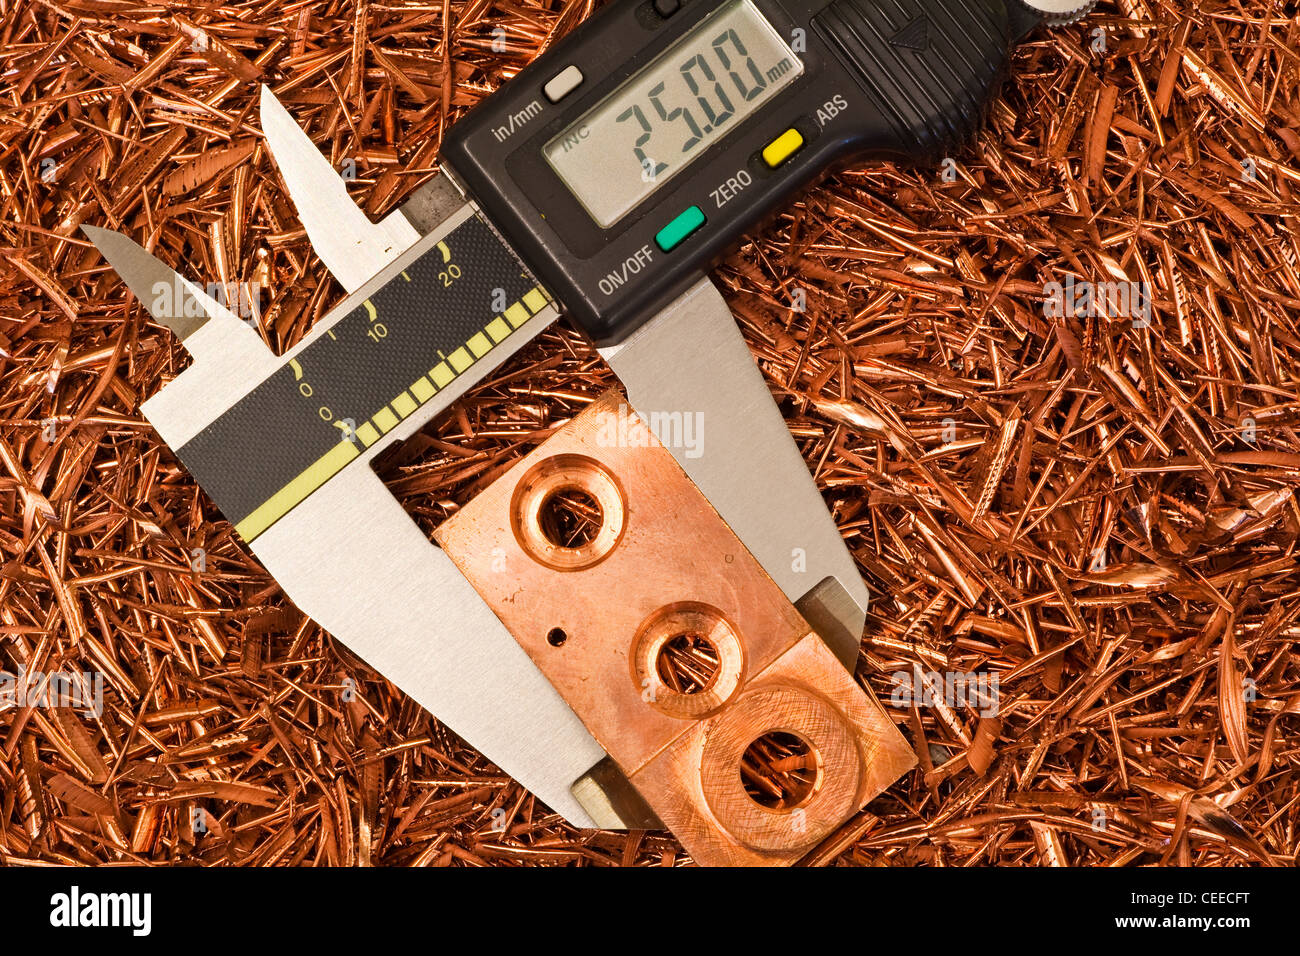 An electronic vernier caliper used to measure a copper component - Stock Image